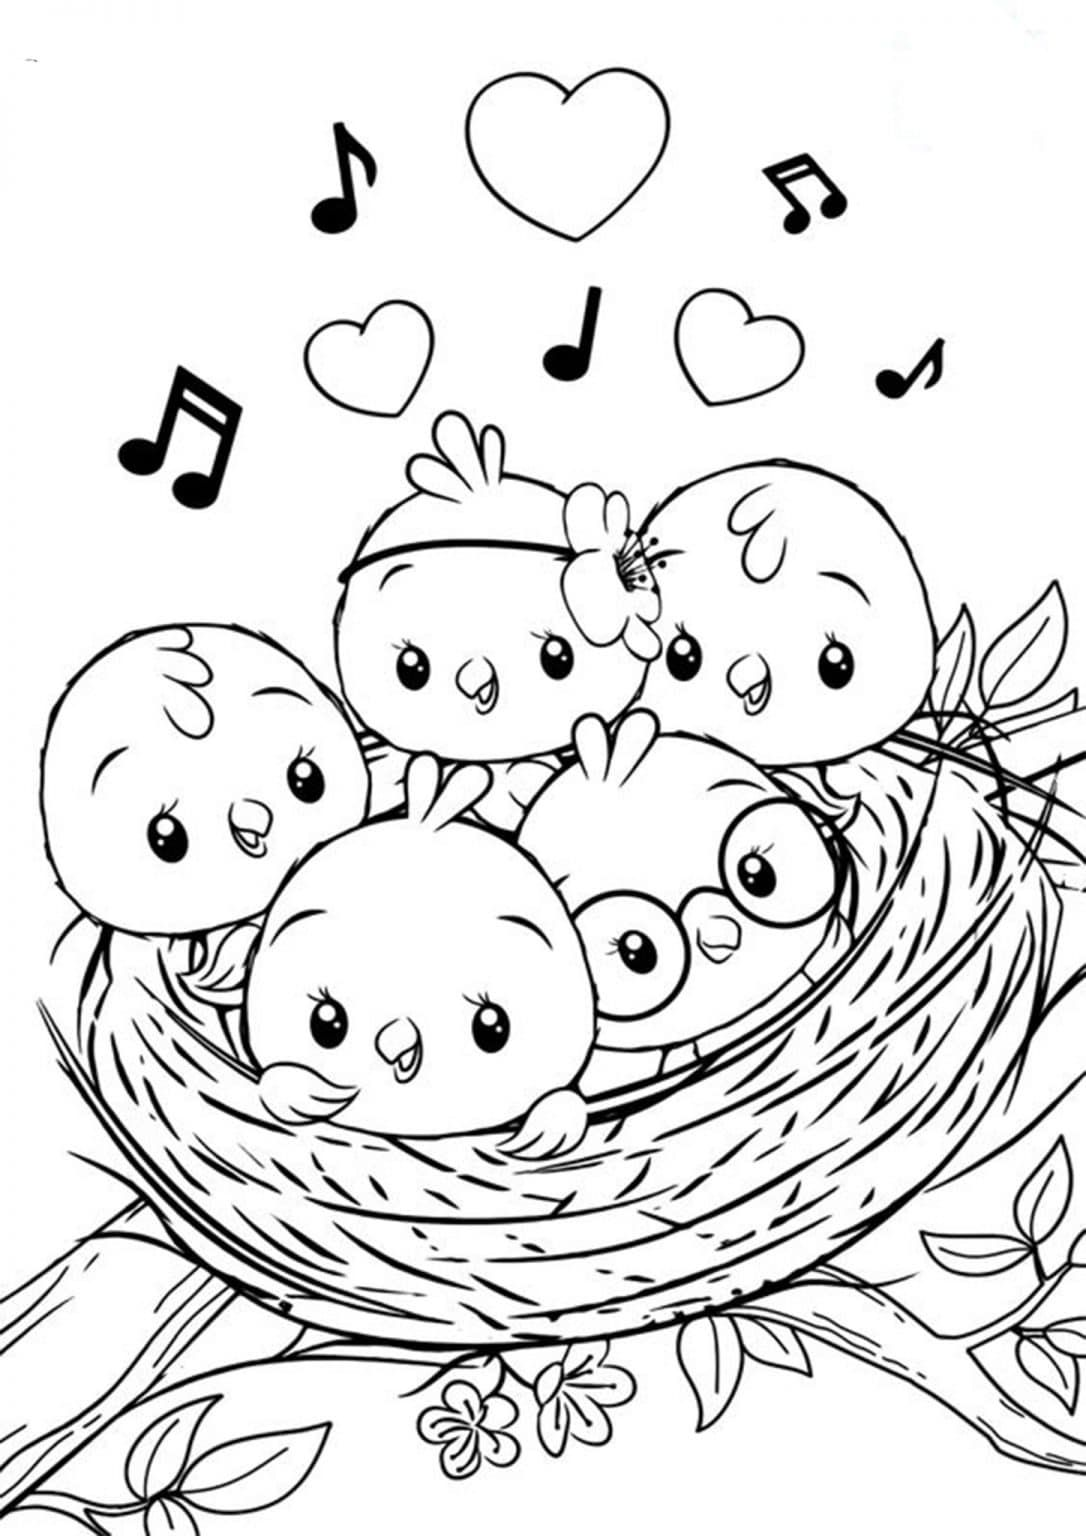 Free Easy To Print Bird Coloring Pages Bird Coloring Pages Cute Coloring Pages Coloring Books